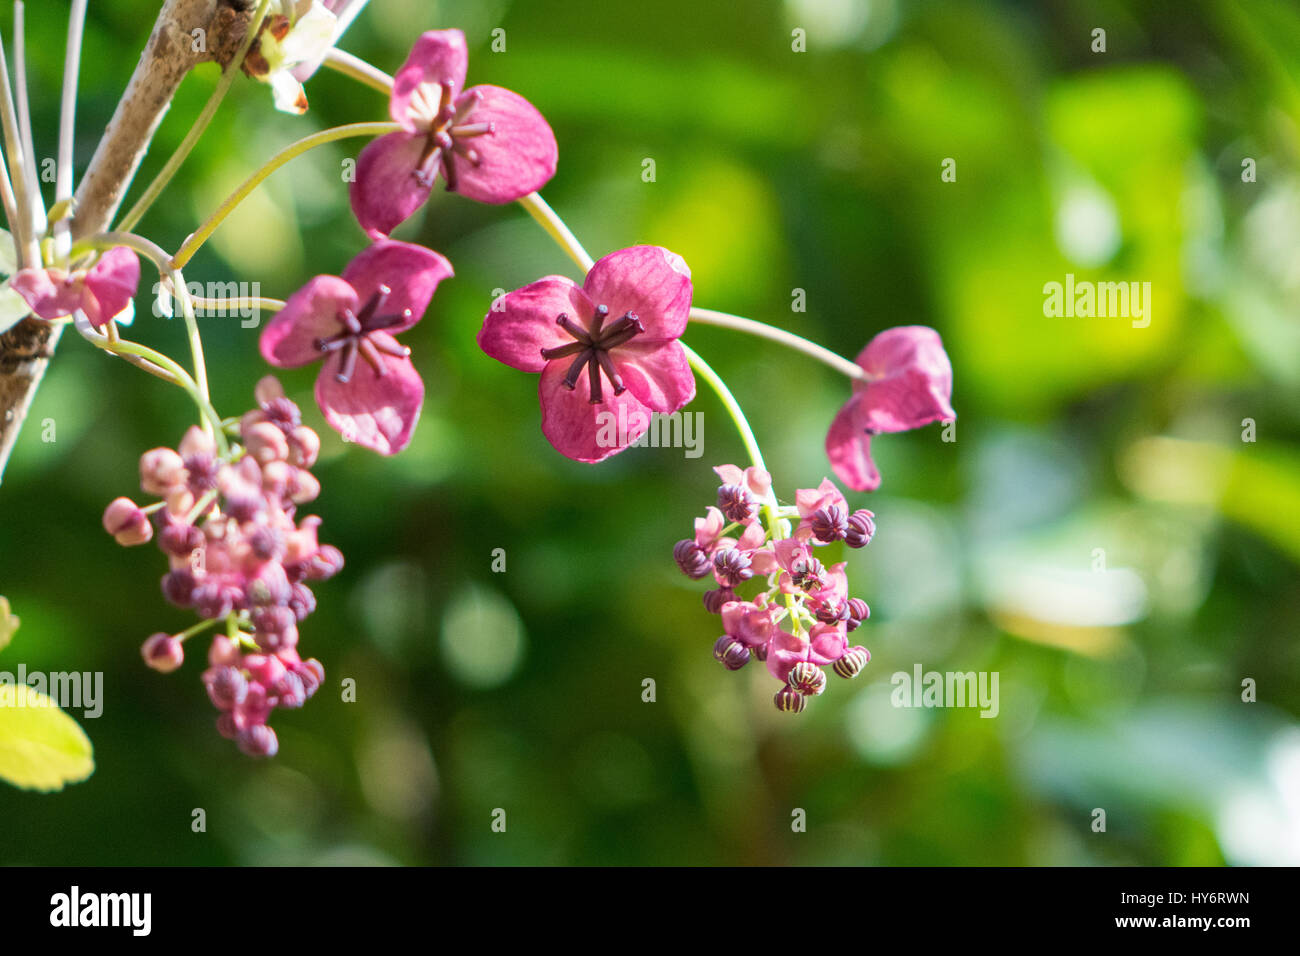 Chocolate vine in flower Stock Photo, Royalty Free Image ...